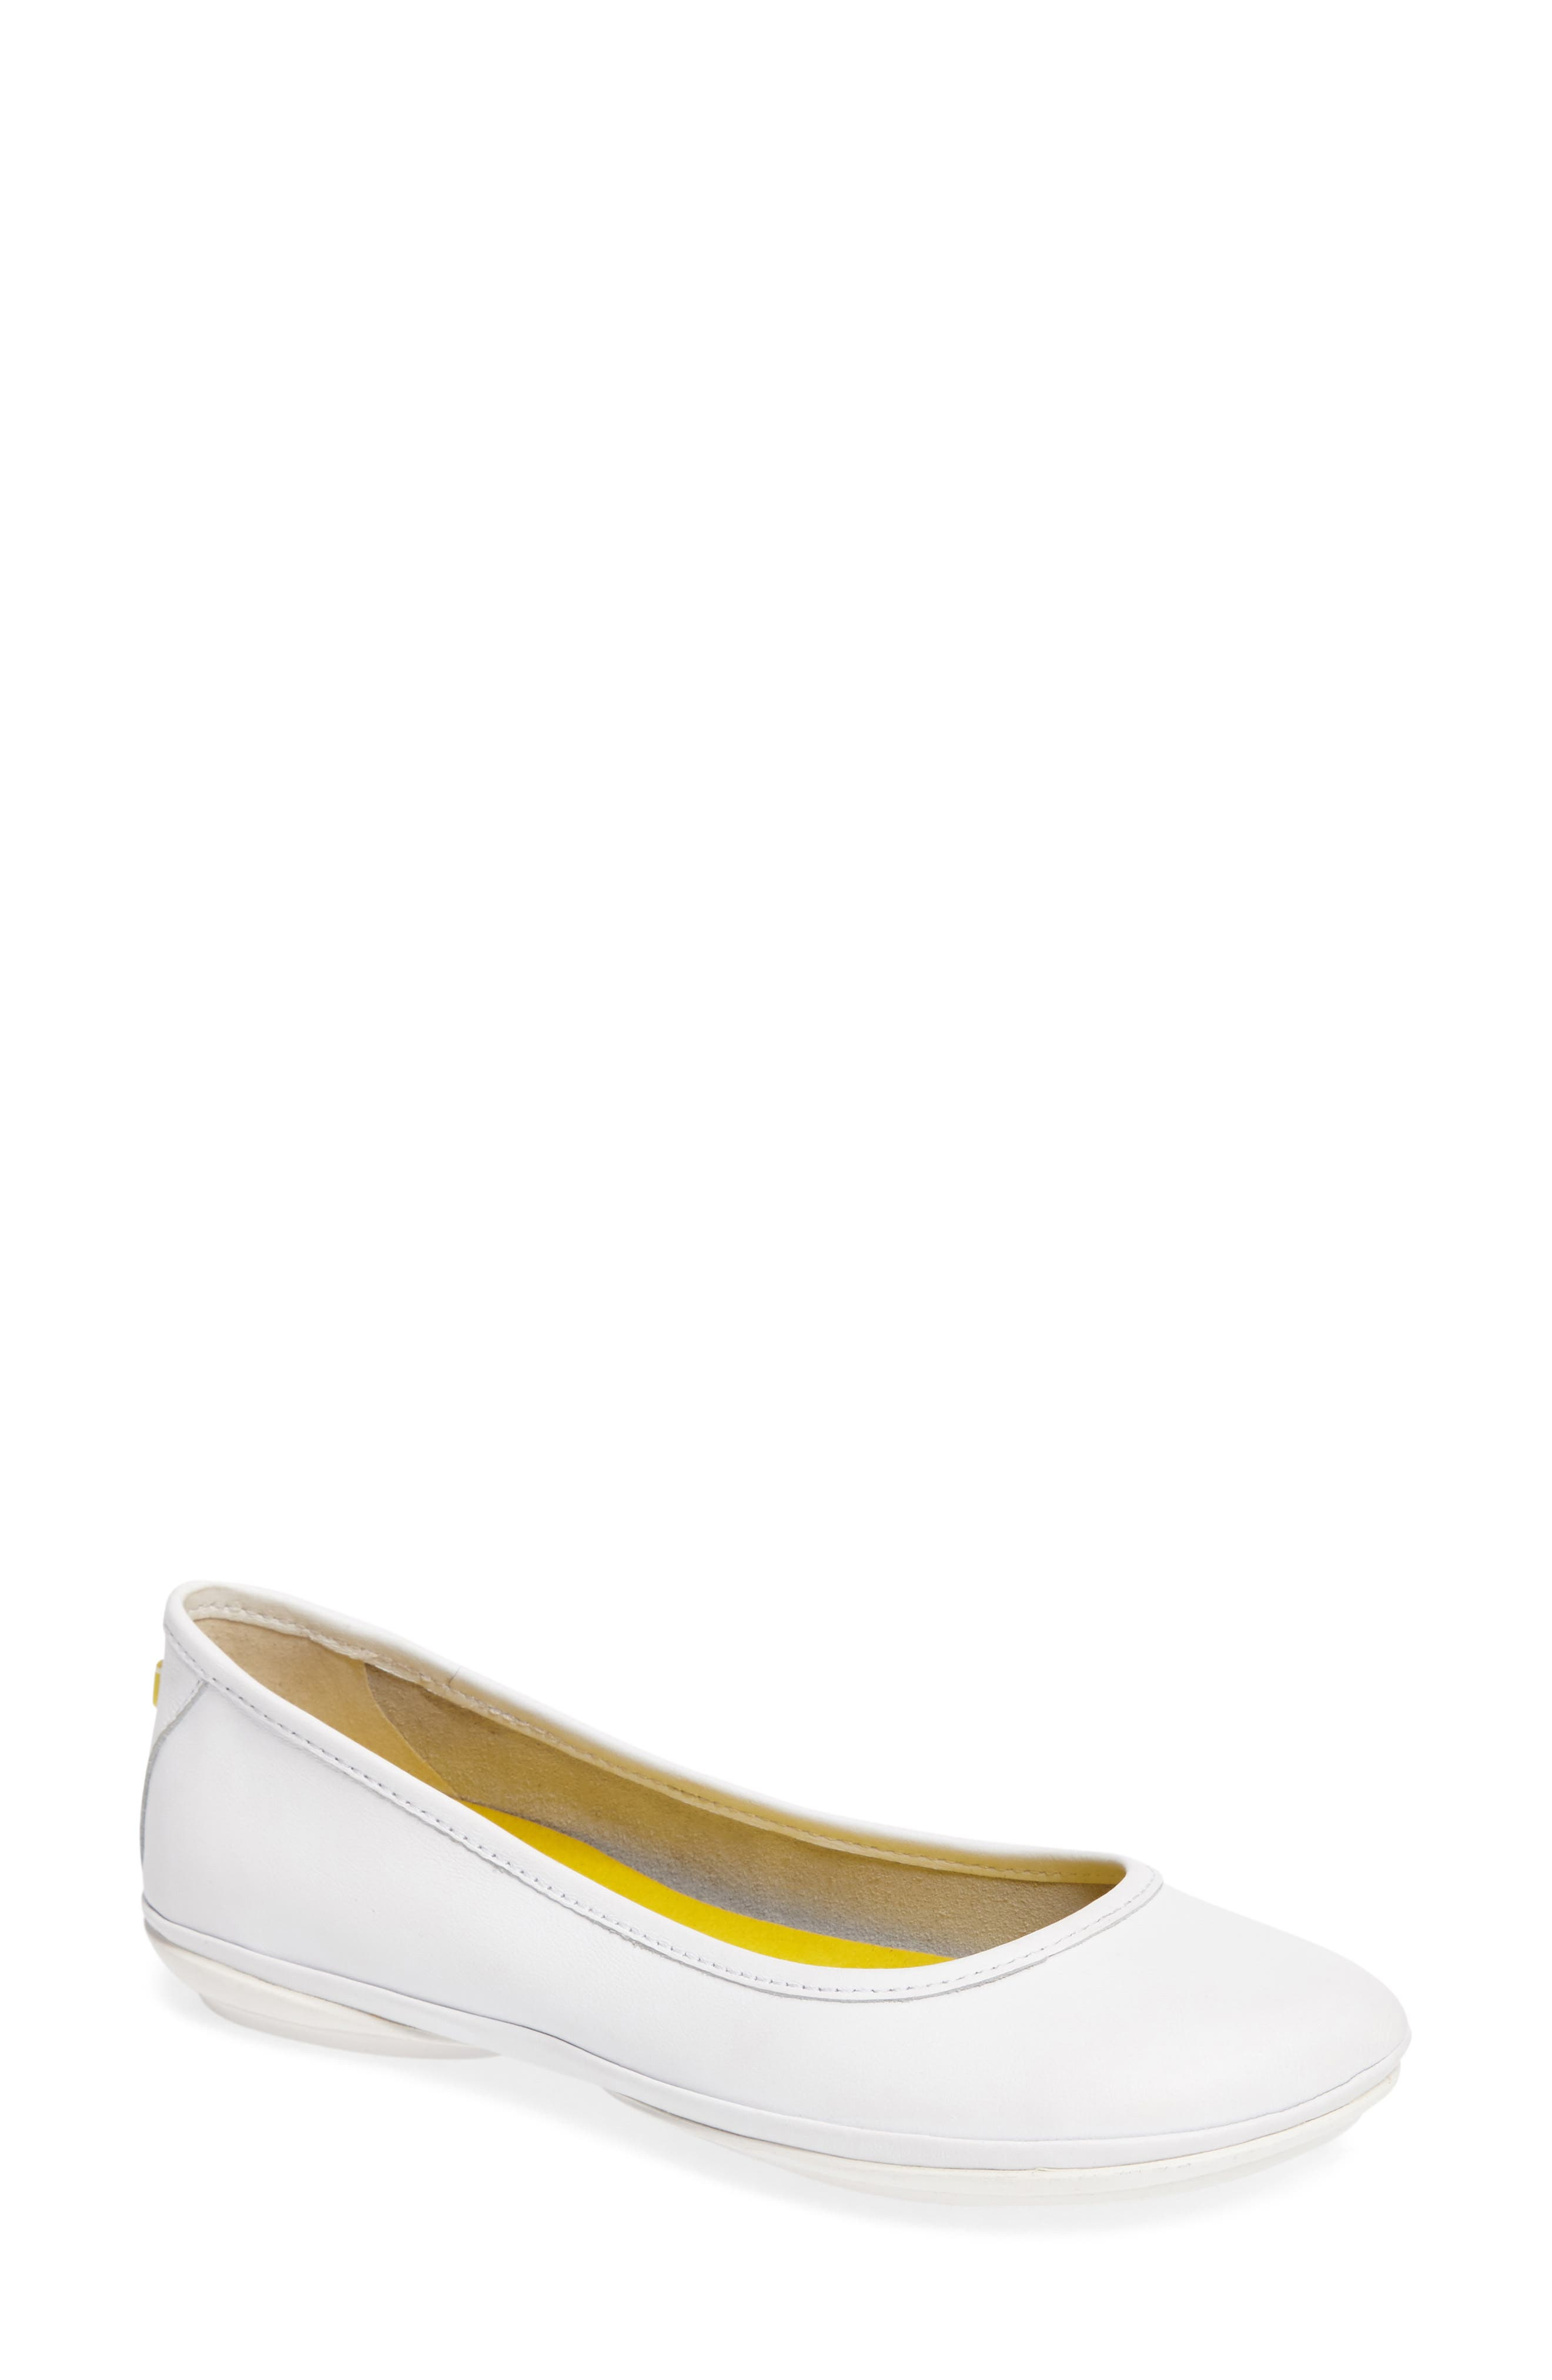 Right Nina Ballet Flat,                         Main,                         color, White Leather